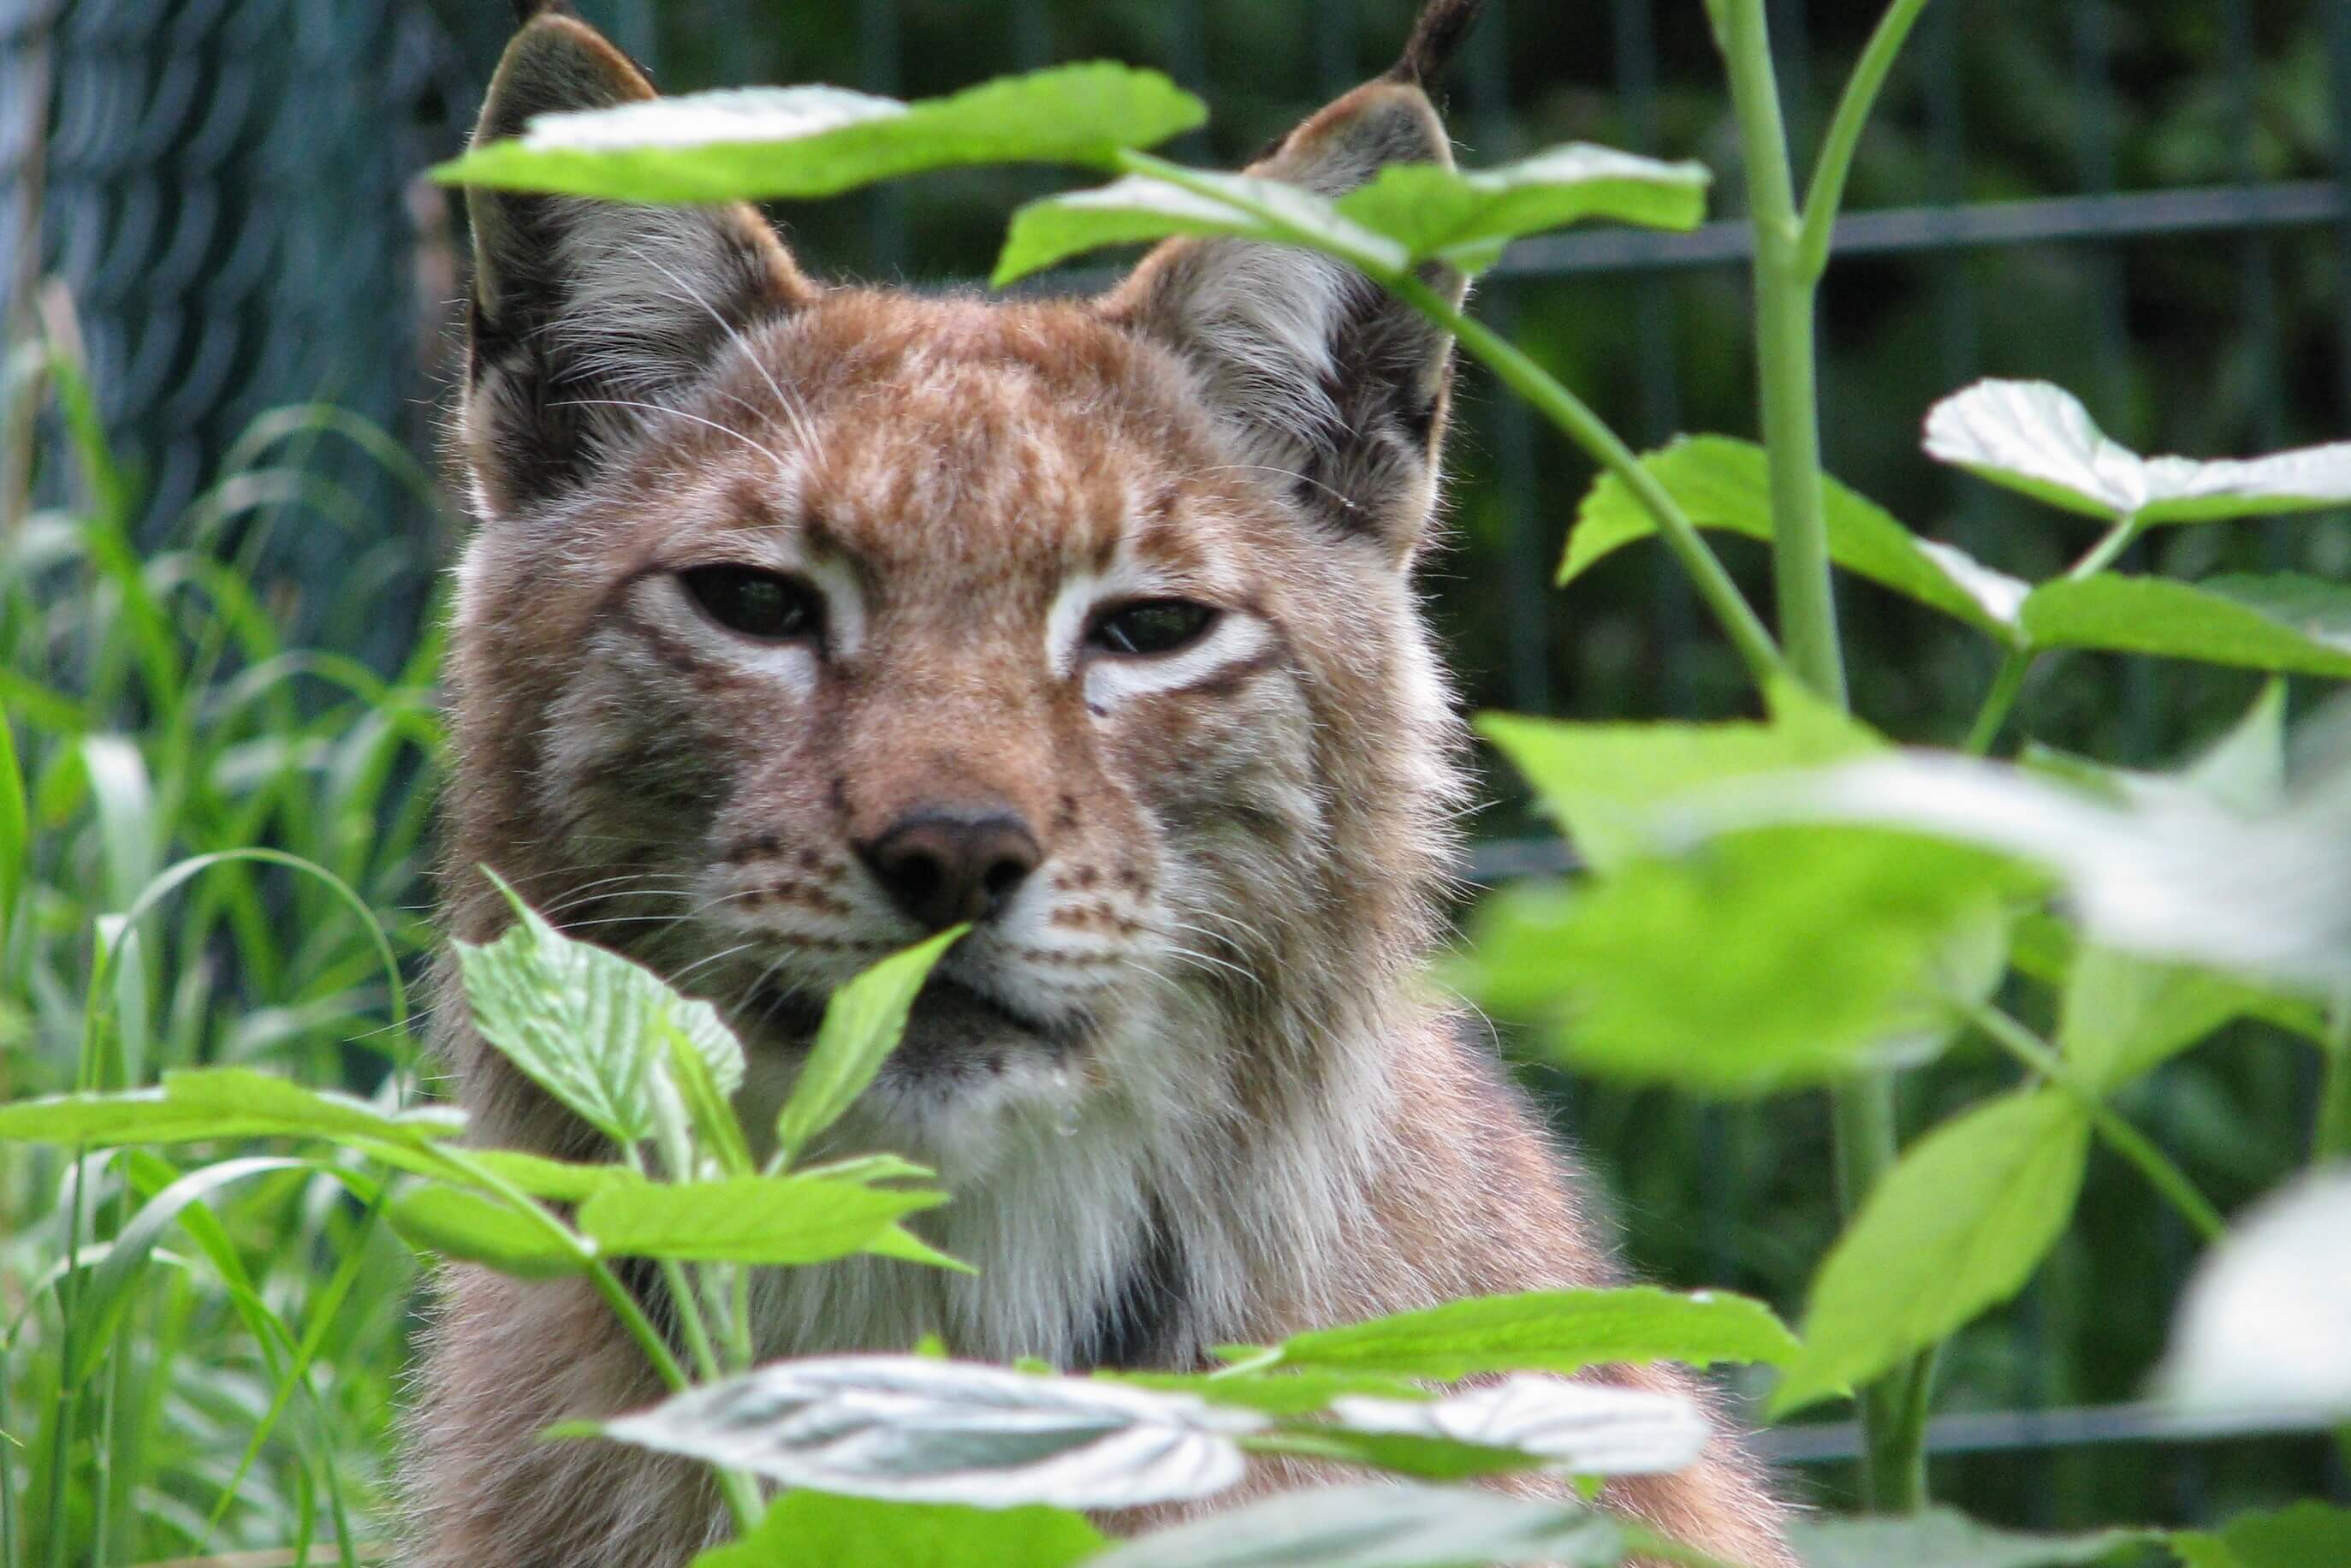 Nationalpark Harz - Luchs im Wildgehege